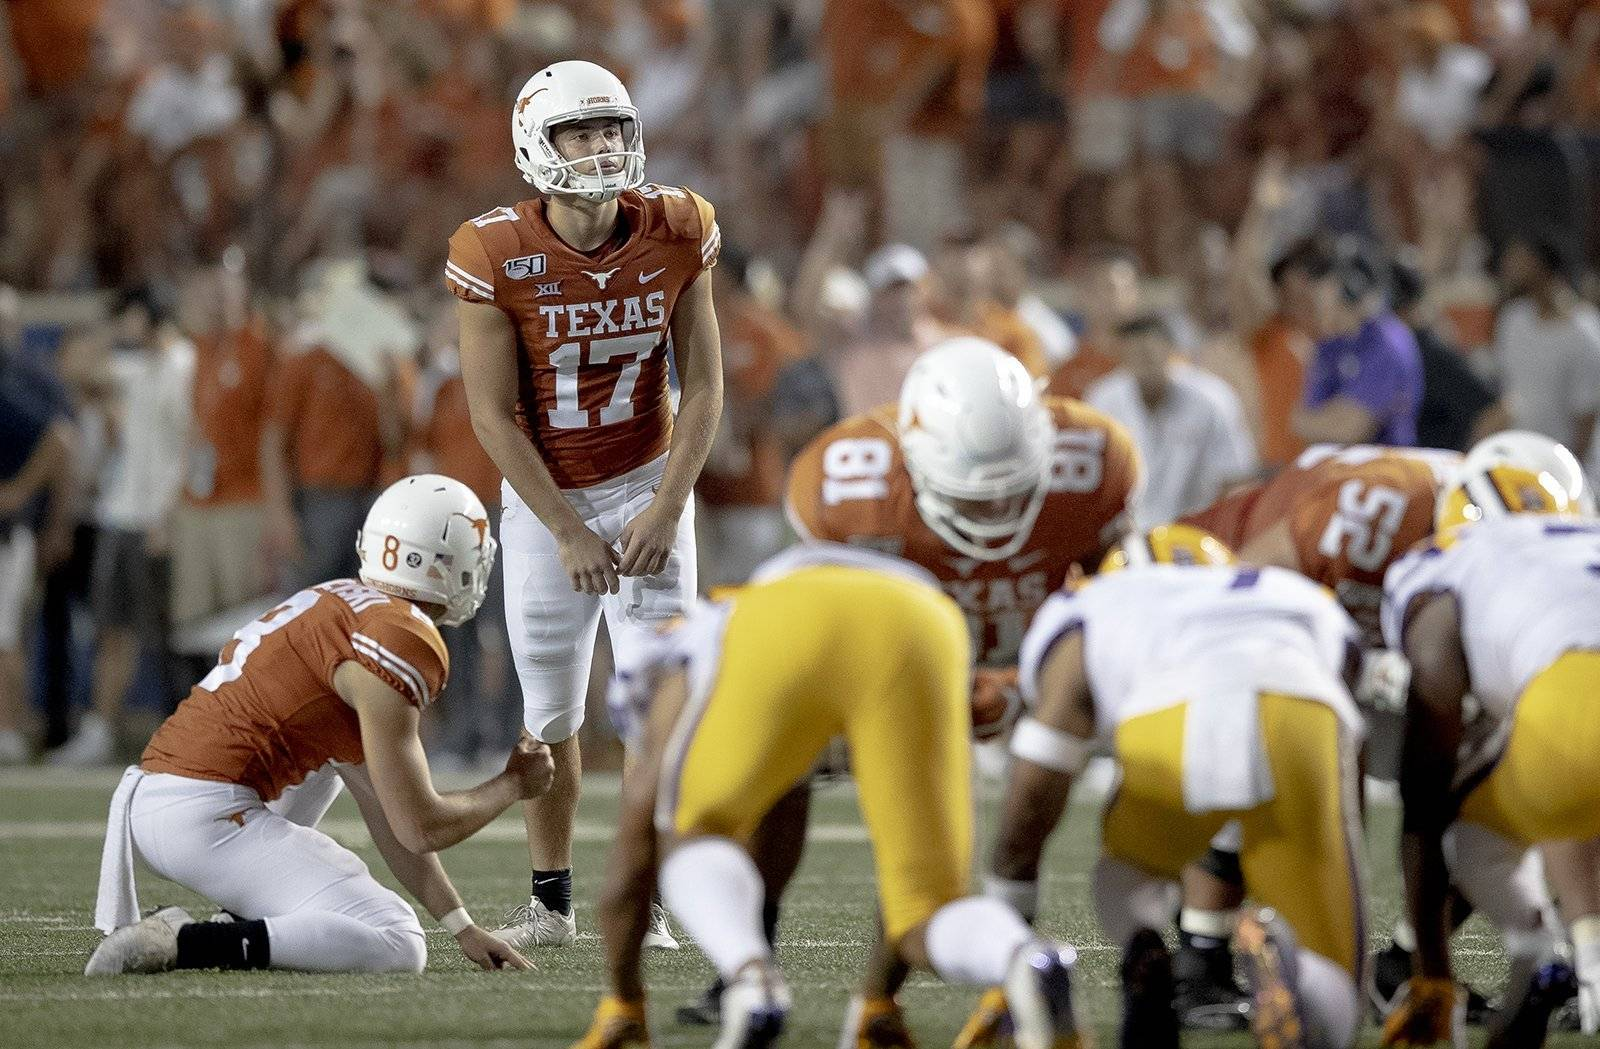 Texas passes up a long attempt against LSU but still has faith in kicker Cameron Dicker's range